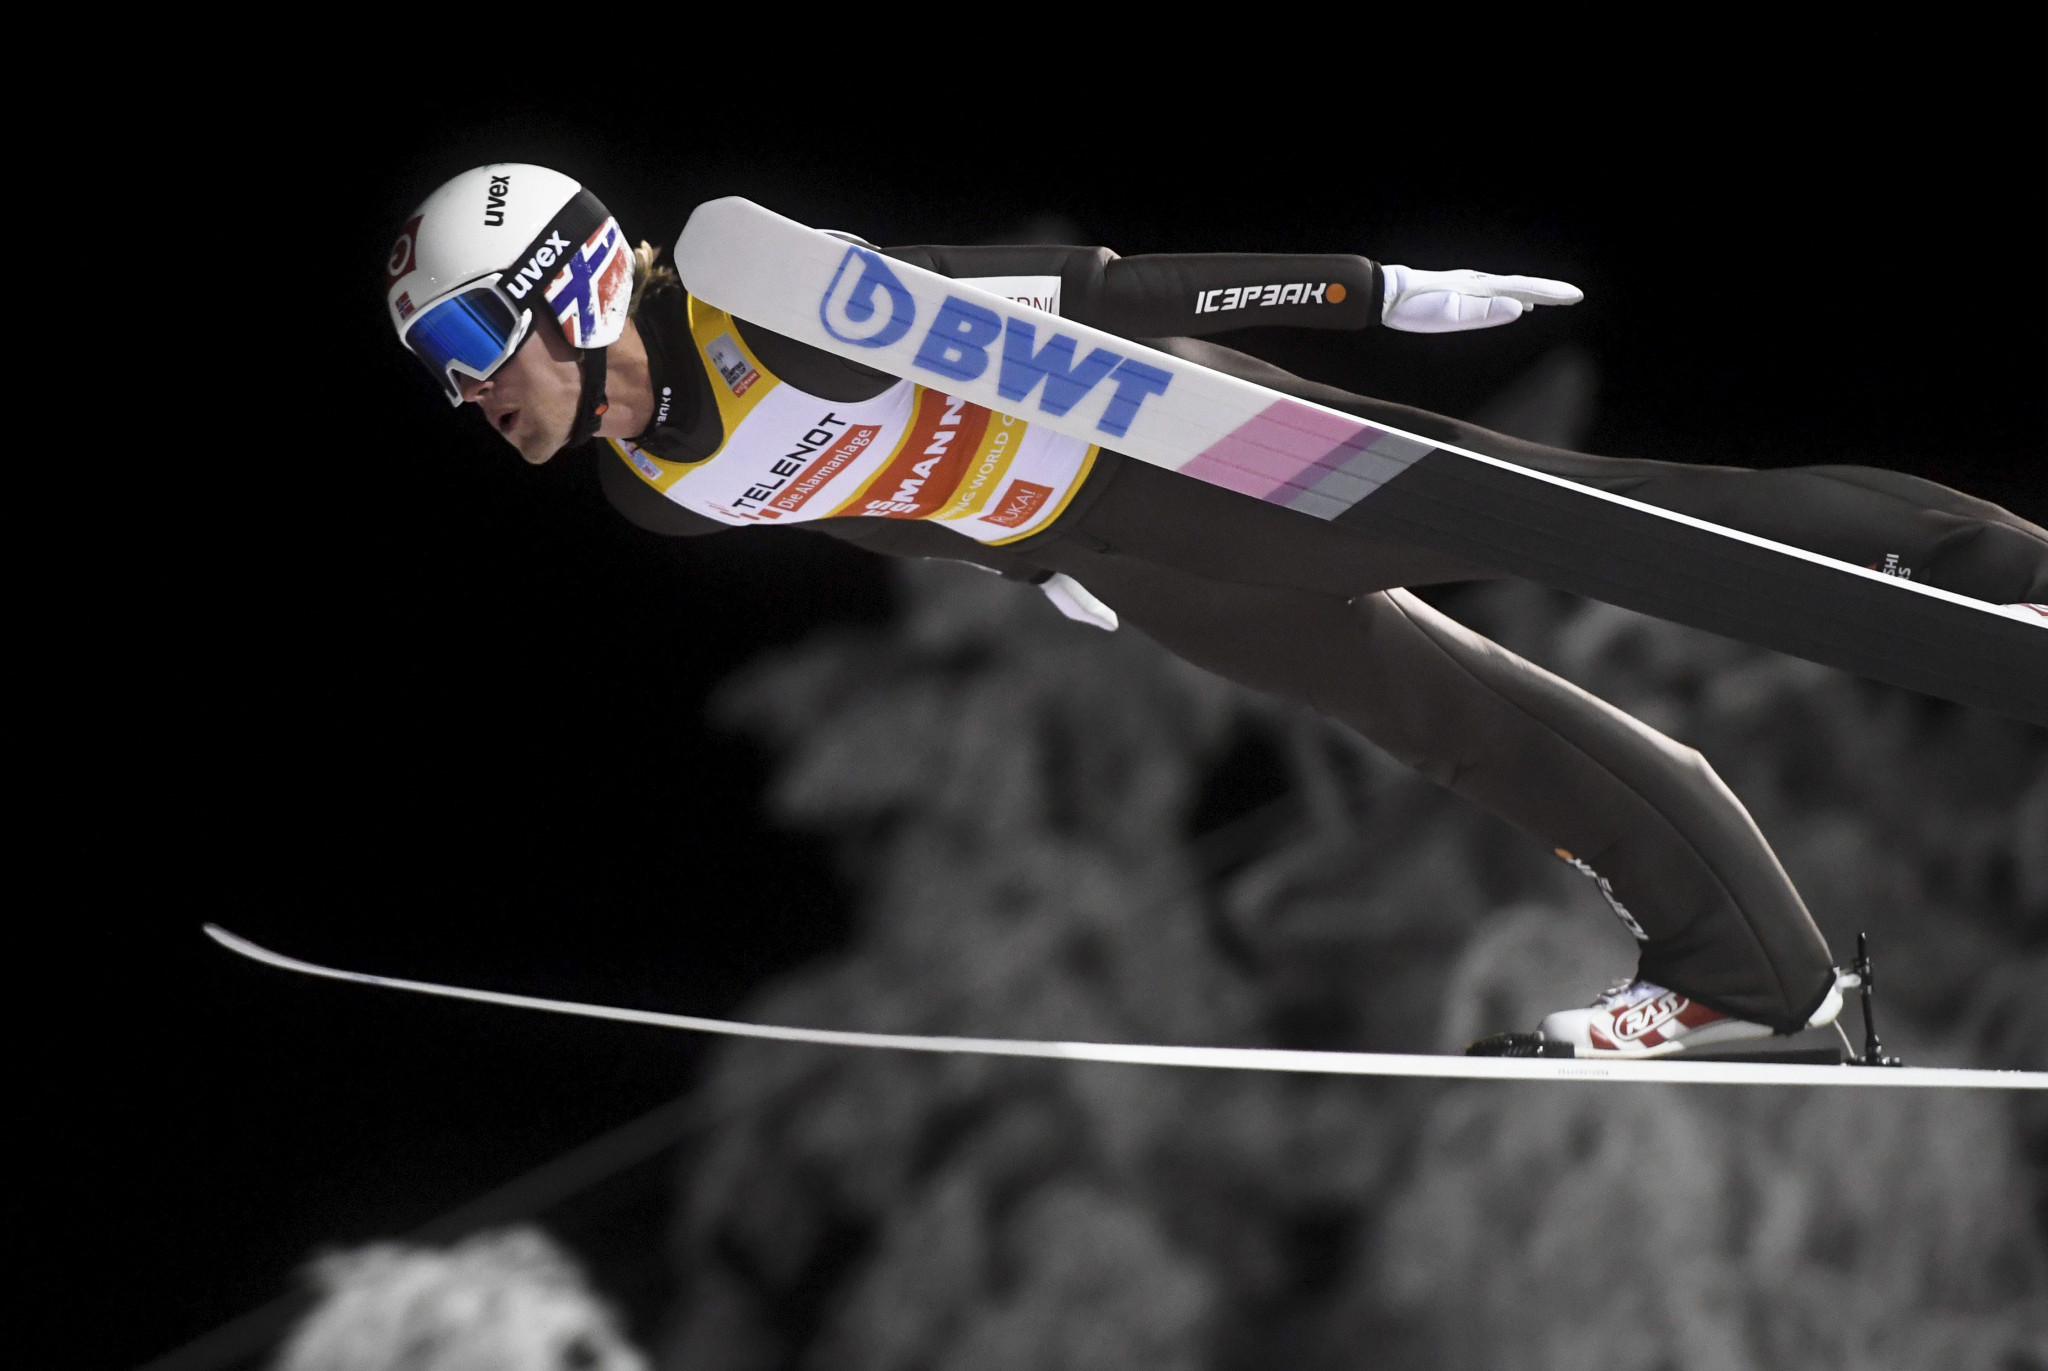 Norway's Daniel-André Tande leads the overall standings in the FIS Men's Ski Jumping World Cup ©Getty Images